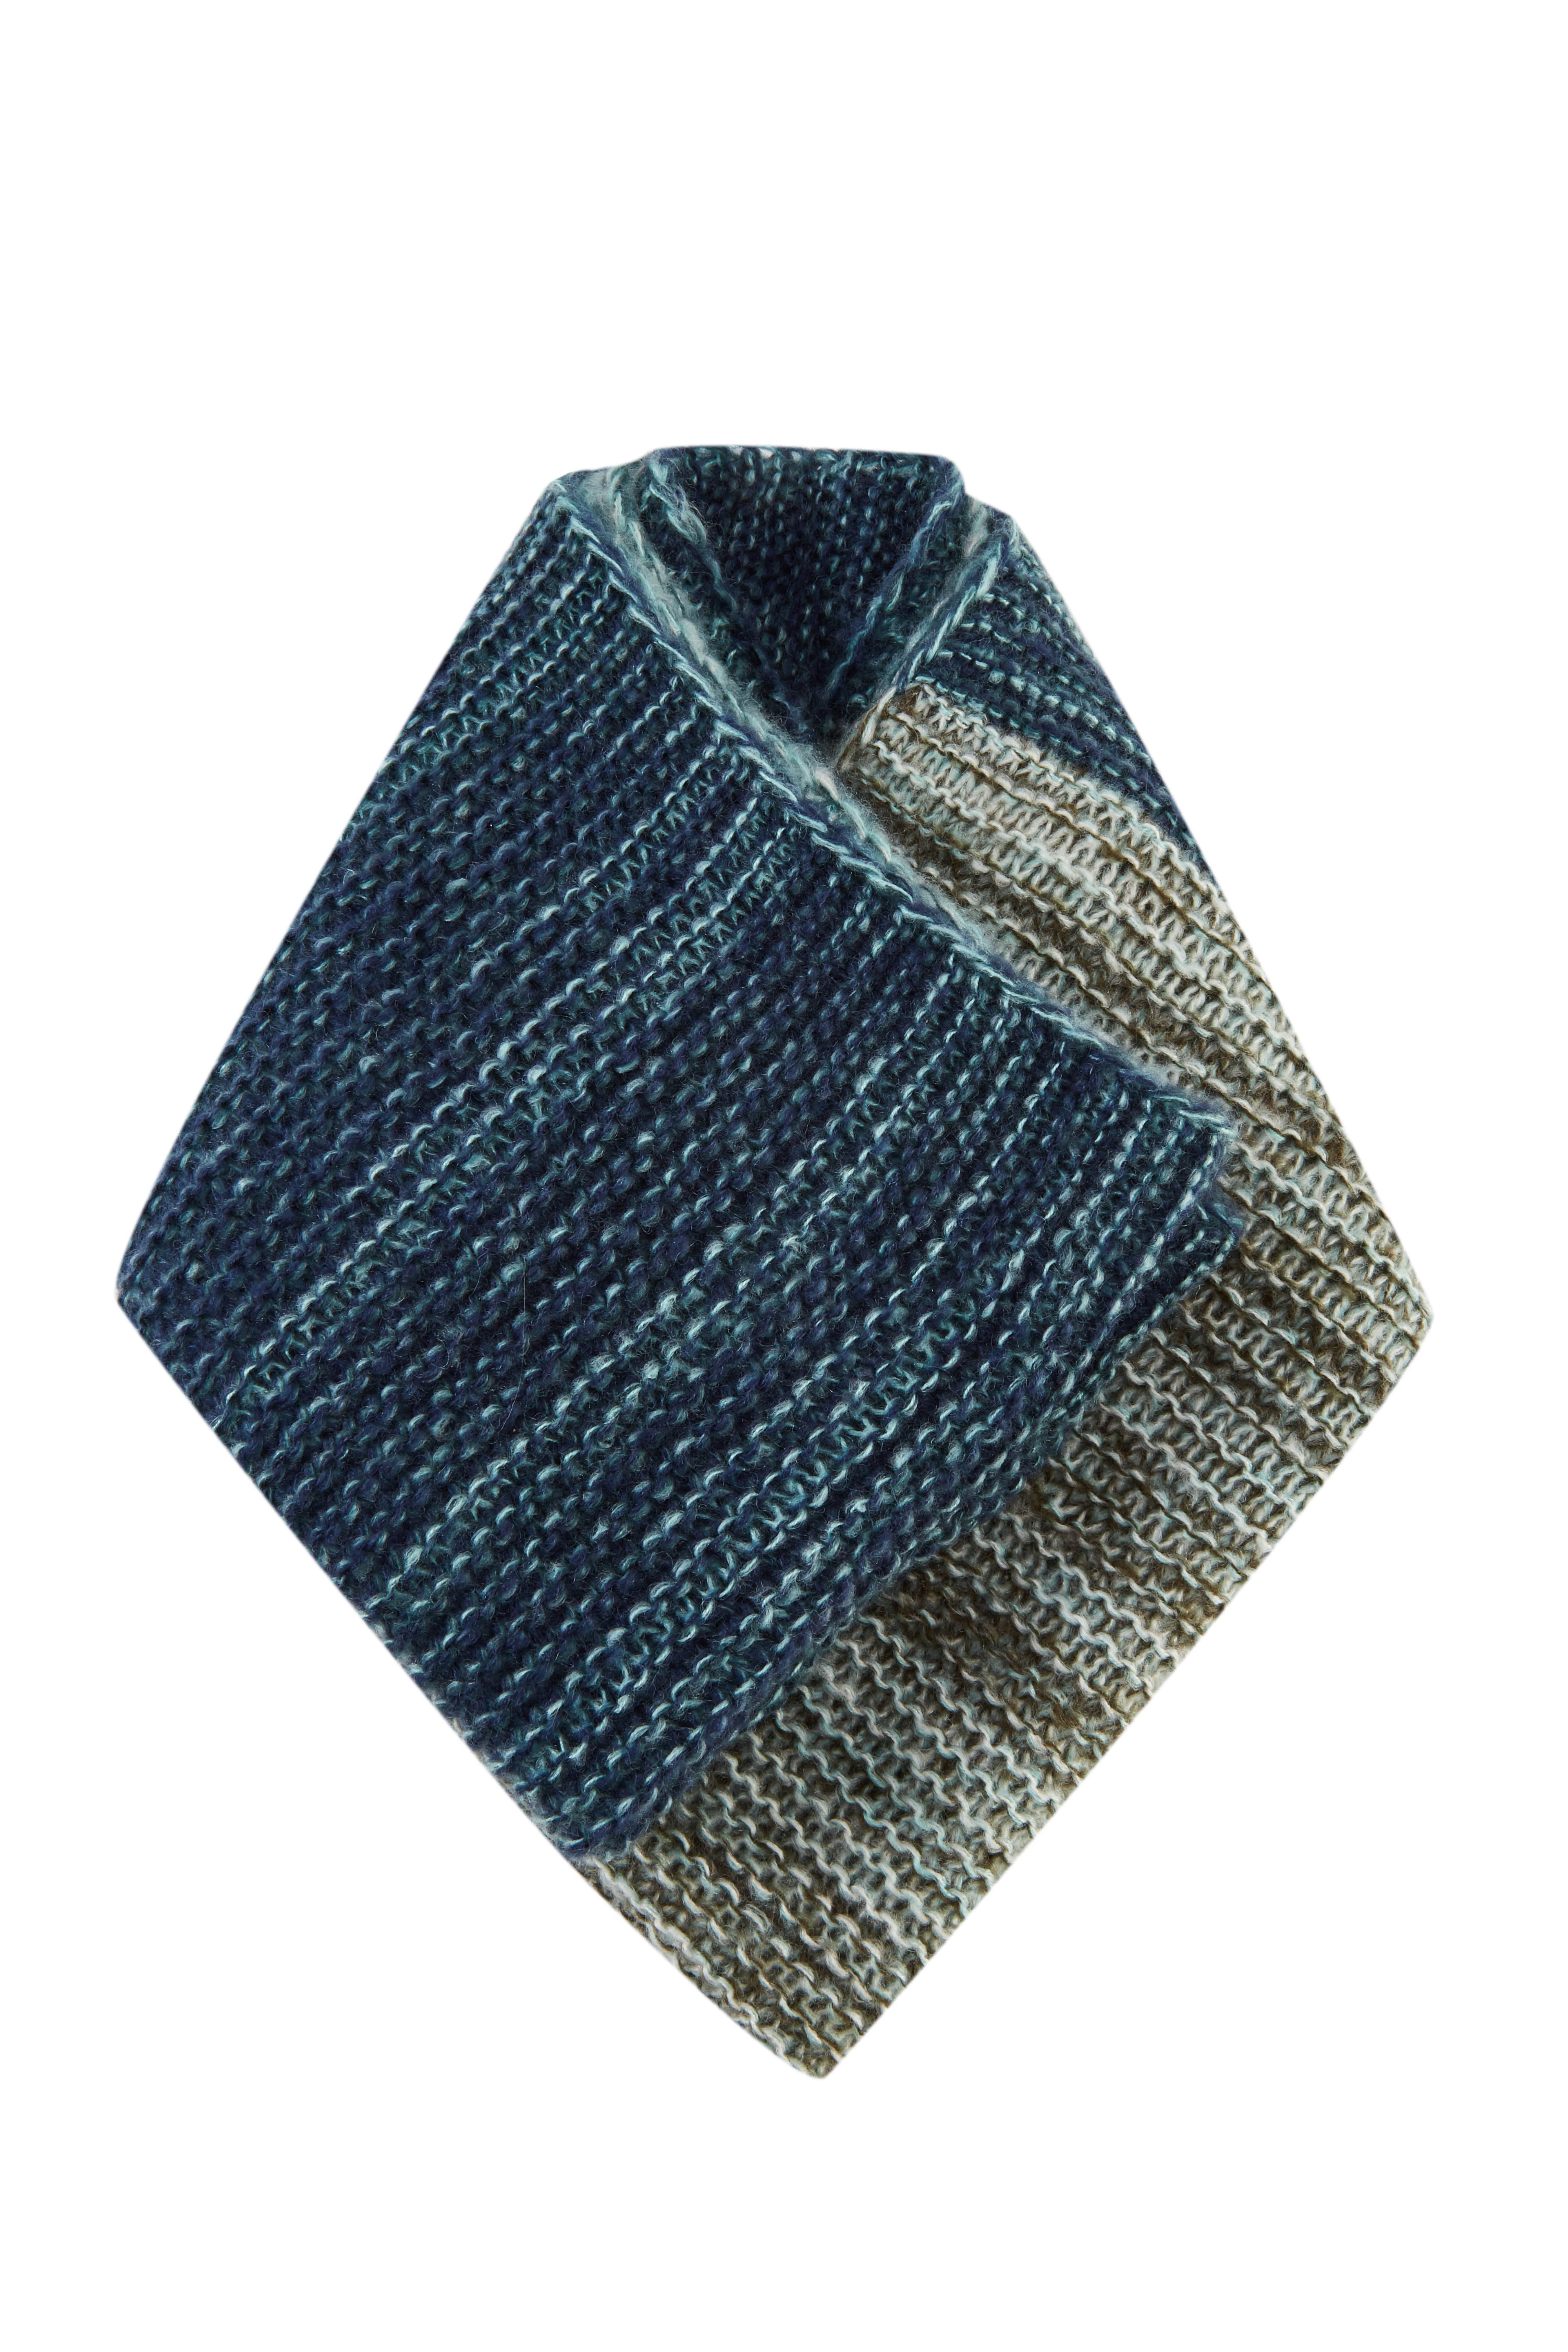 Women's Winter Scarf Wrapables Knitted Warm Soft Neck